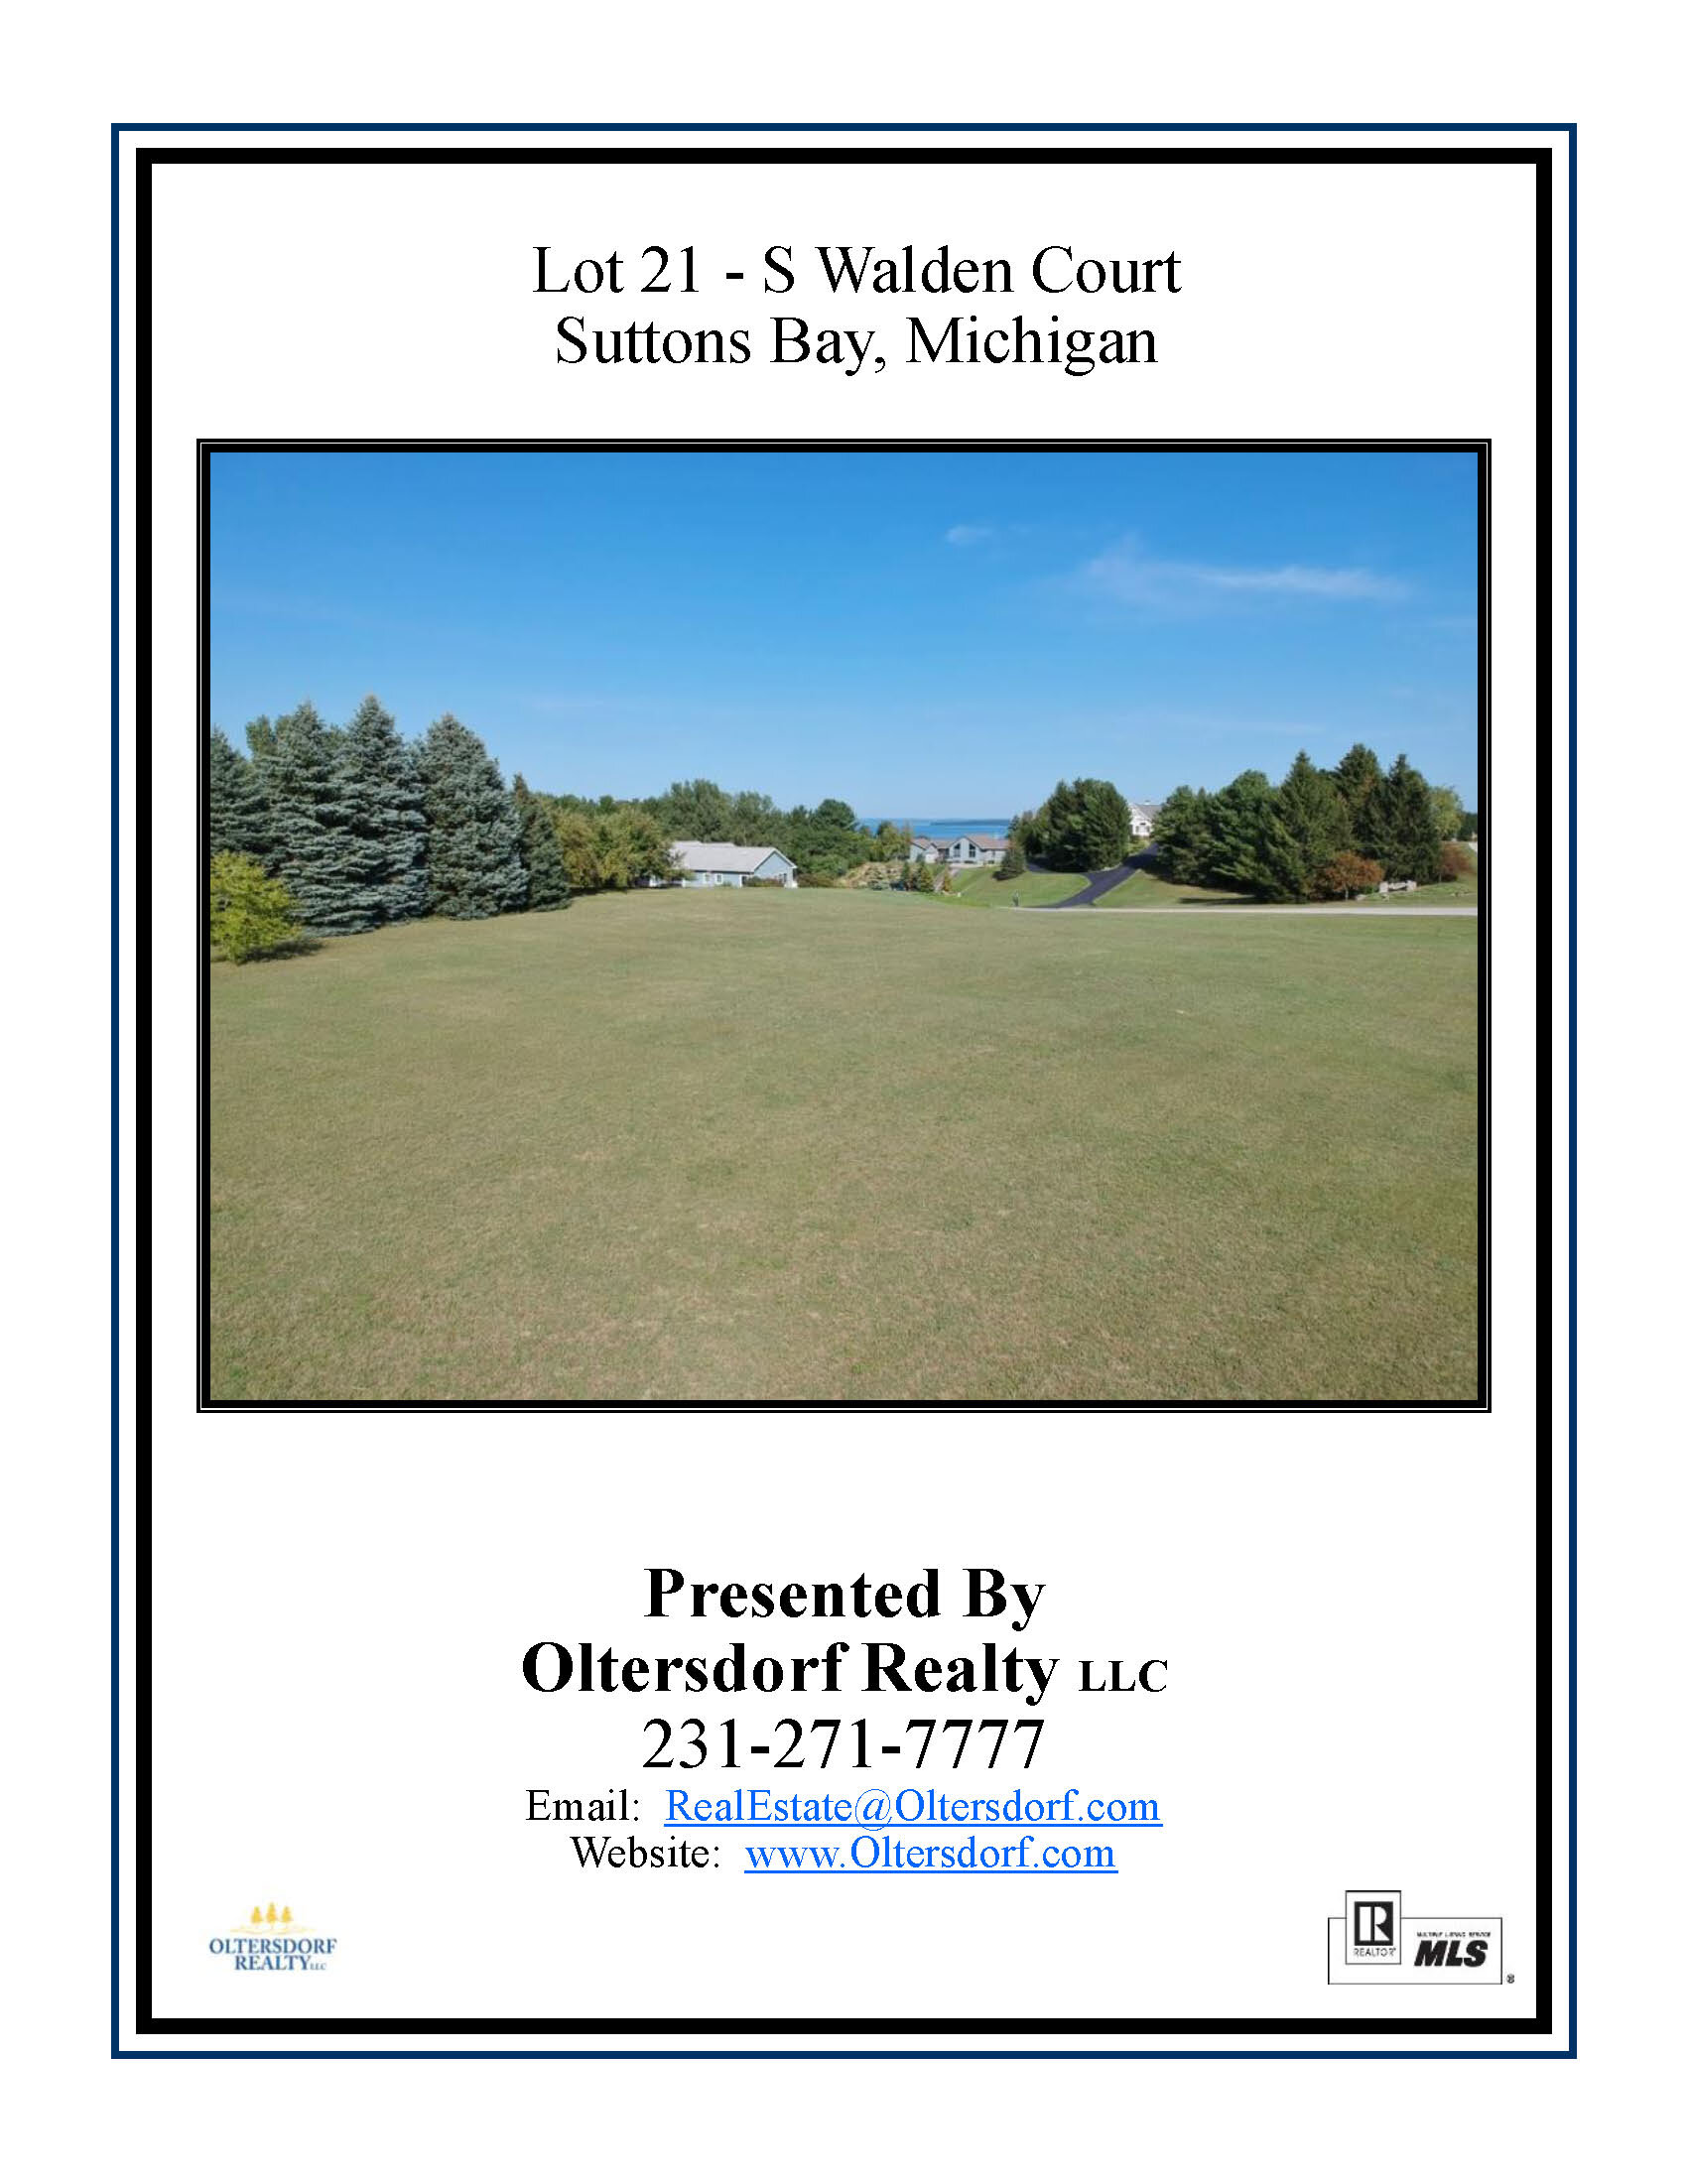 Lot 21 – S Walden Court, Suttons Bay, MI – Water View Vacant Lot Marketing Packet (1).jpg